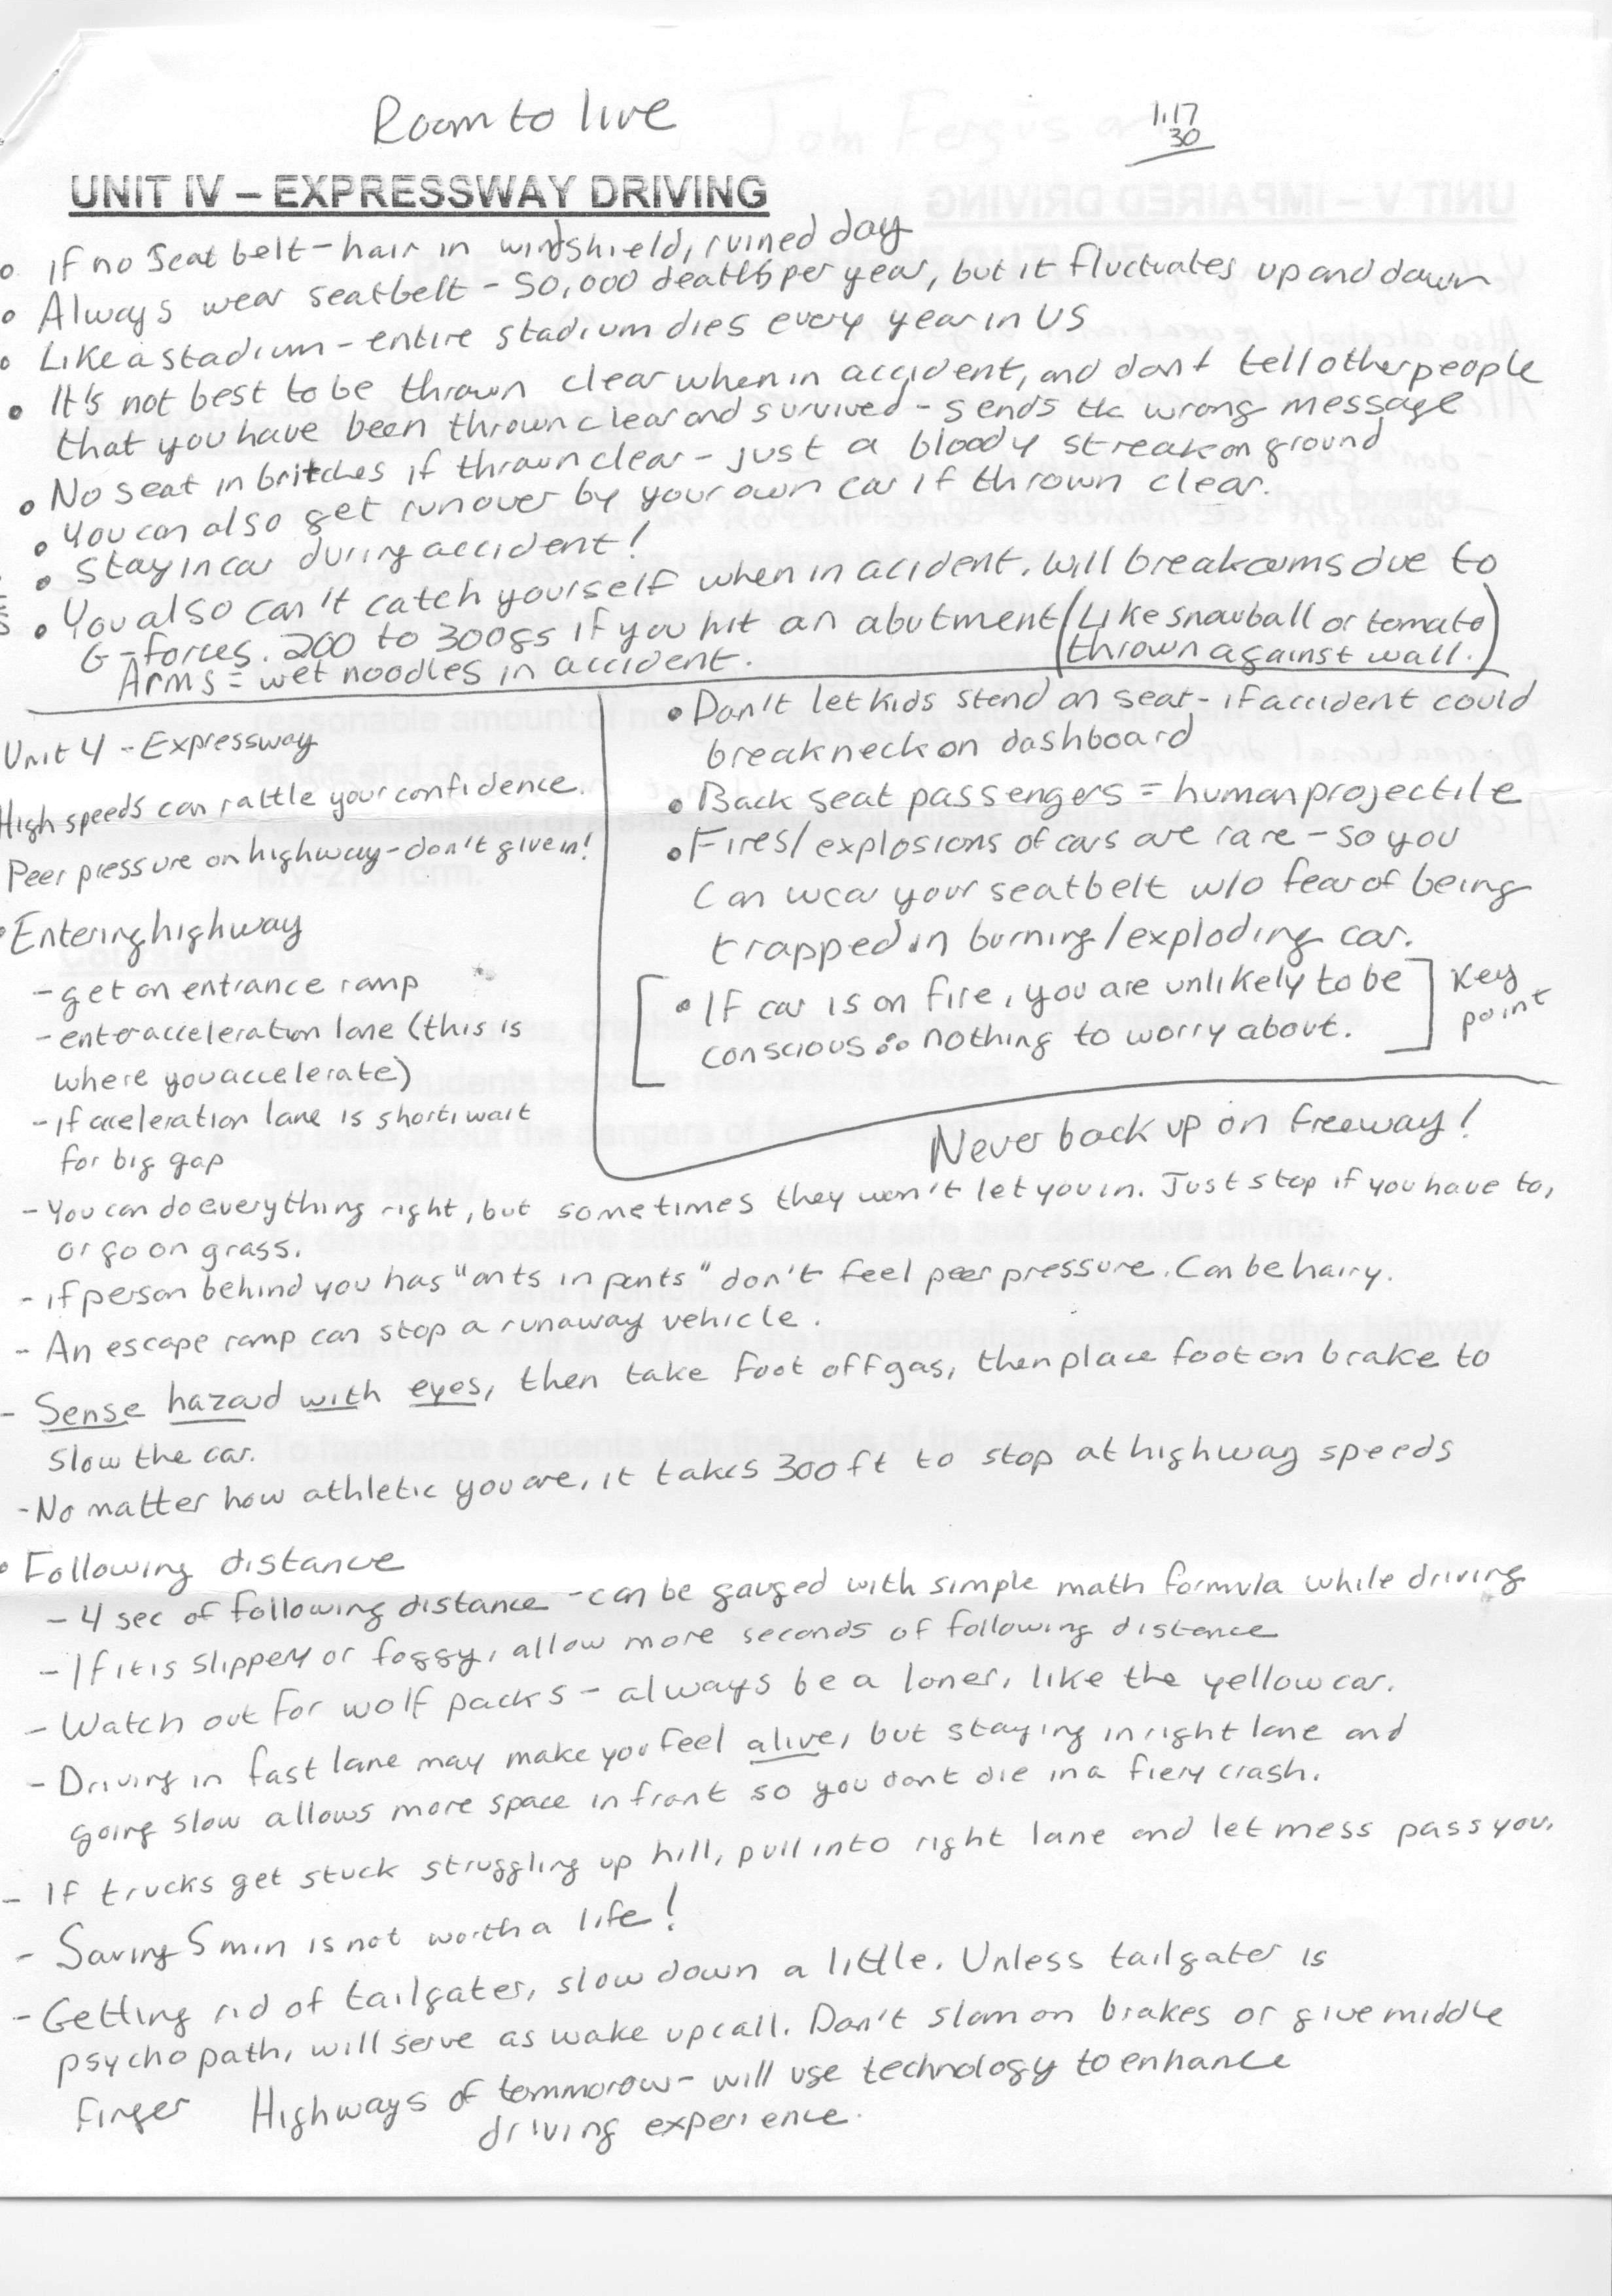 004 Teenage Driving Essay Unit Awesome Accidents Dangers Of Drunk Full